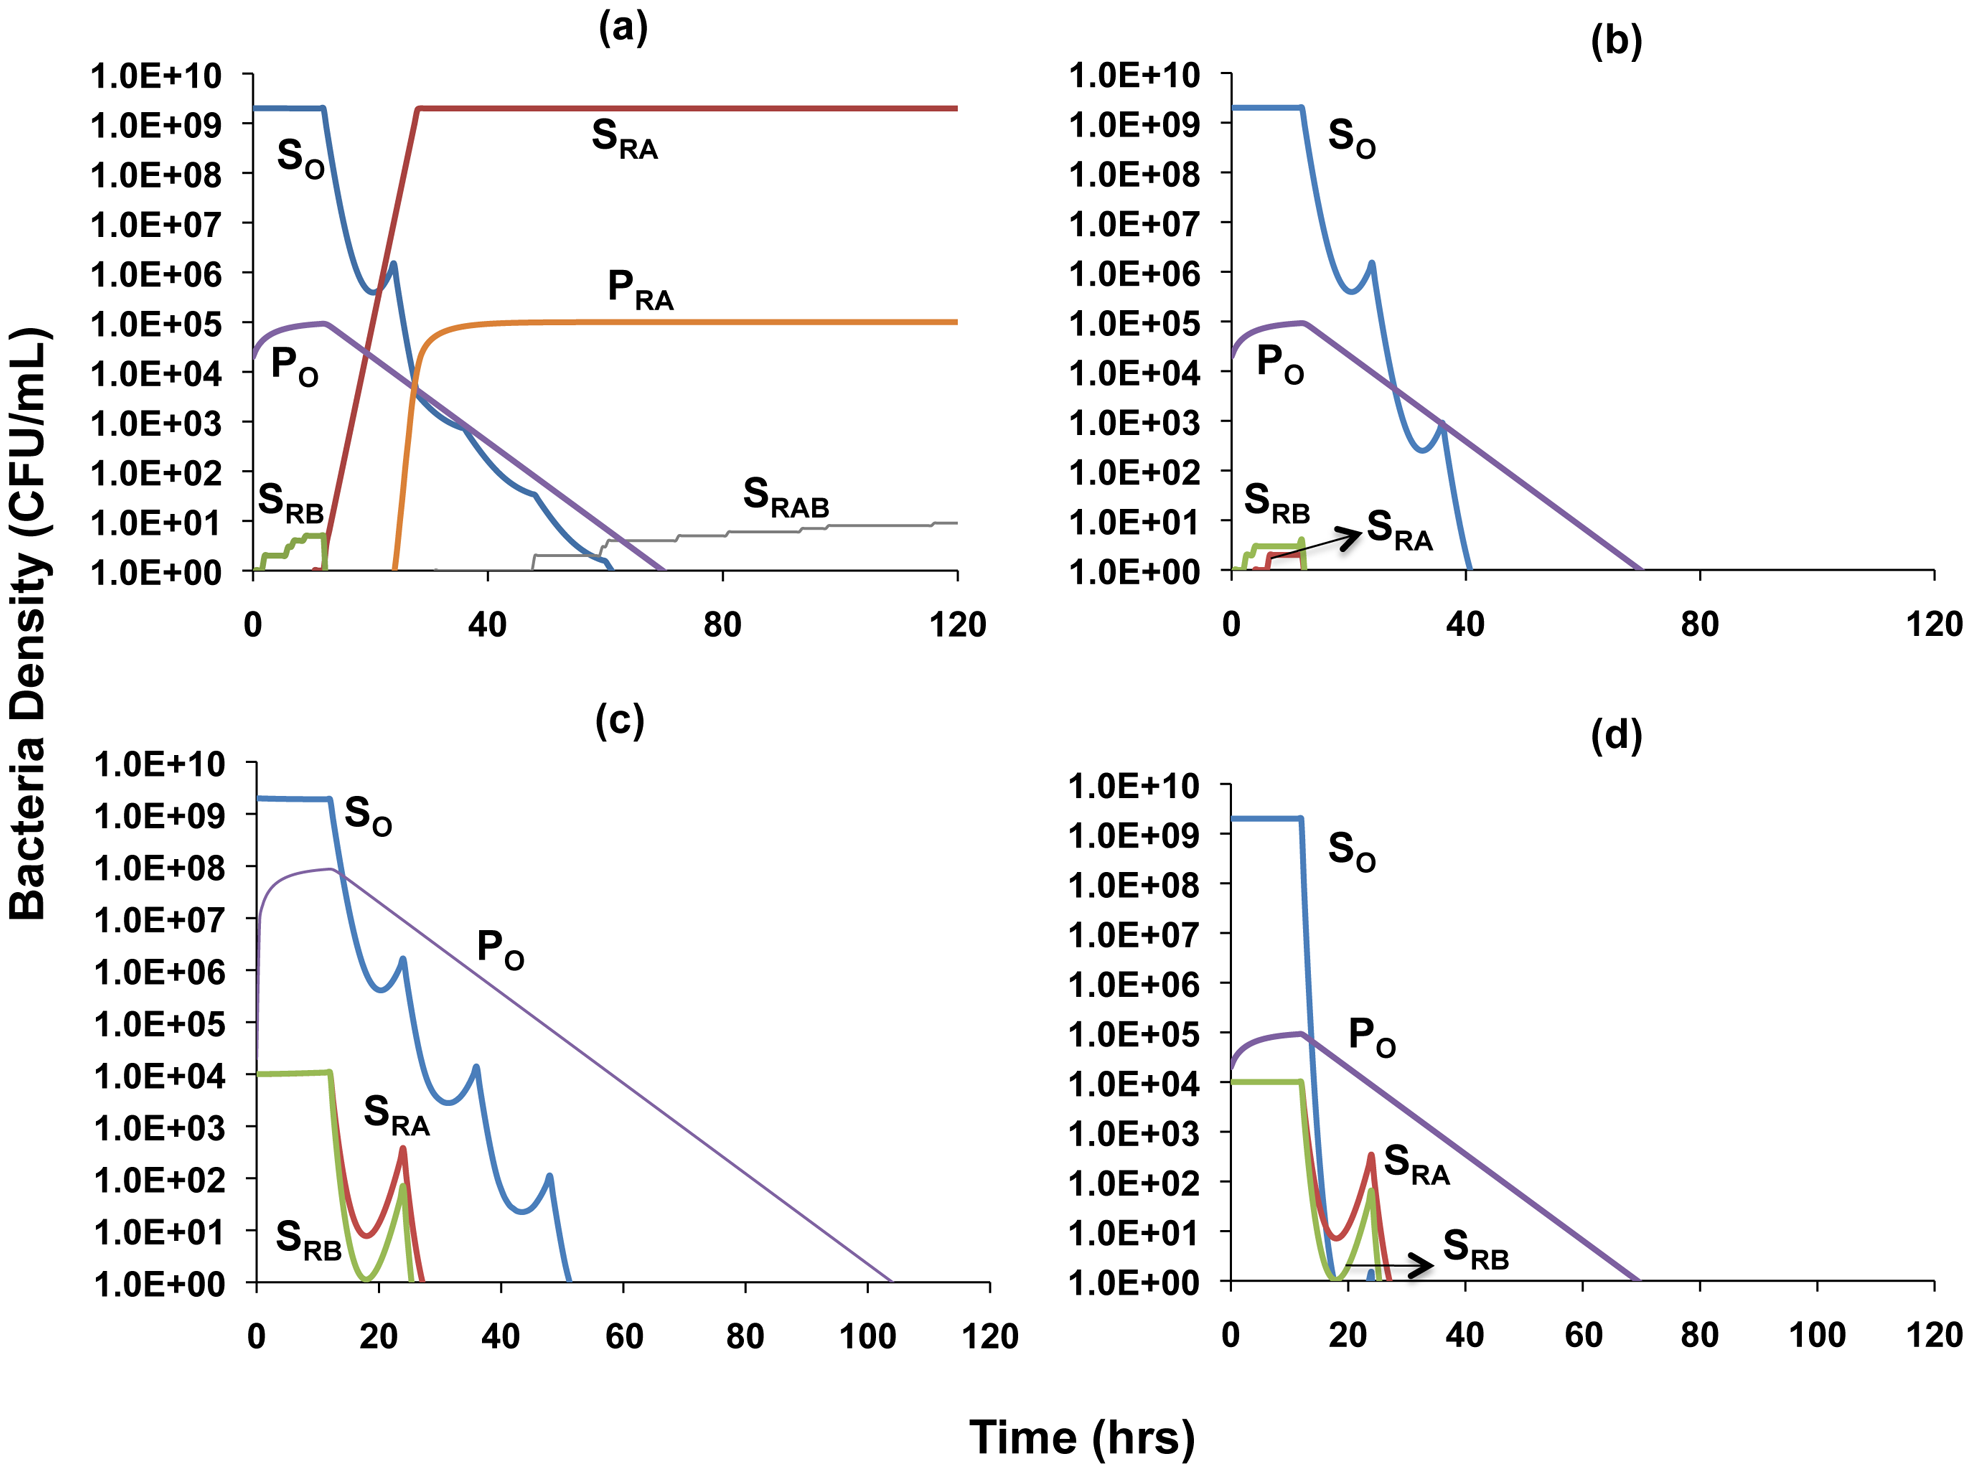 Simulation of the population dynamics of actively replicating and persister bacteria under antibiotic treatment.